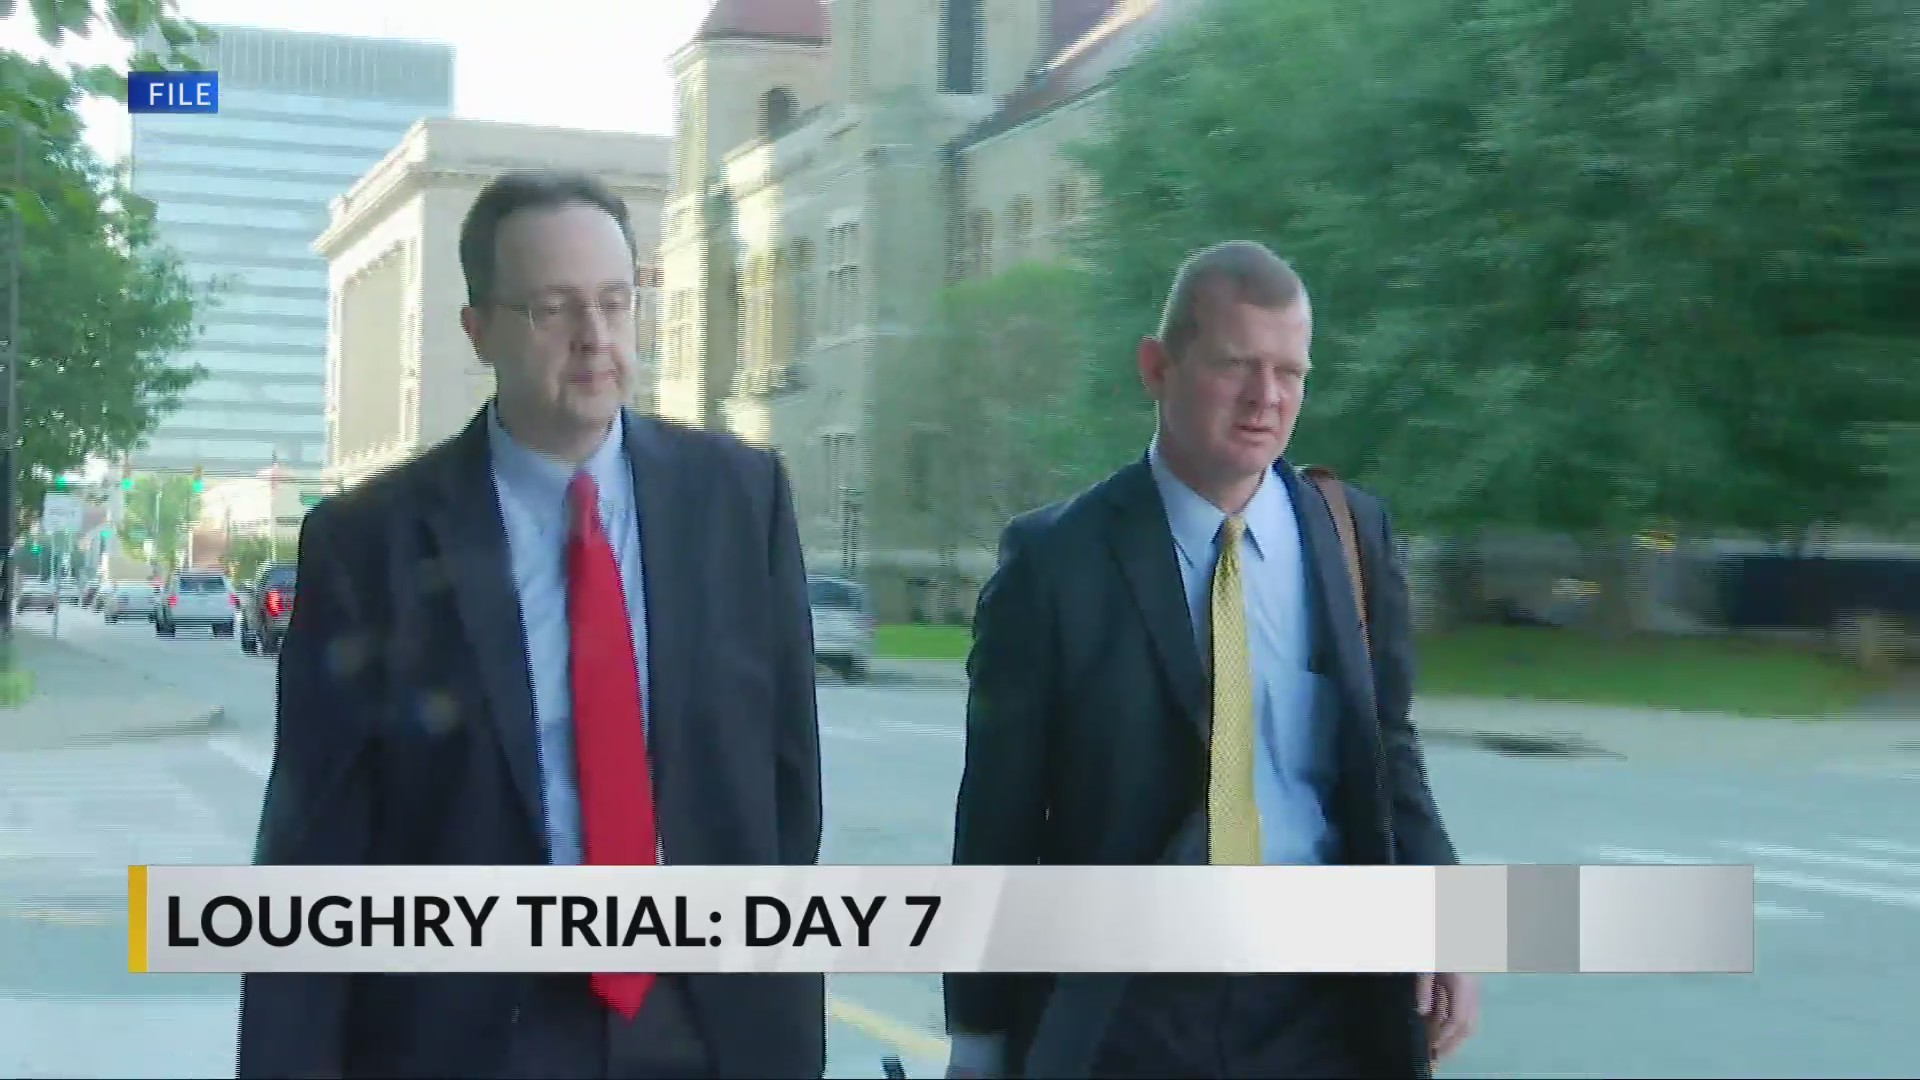 Jury to continue deliberation tomorrow as day 7 of Loughry trial concludes